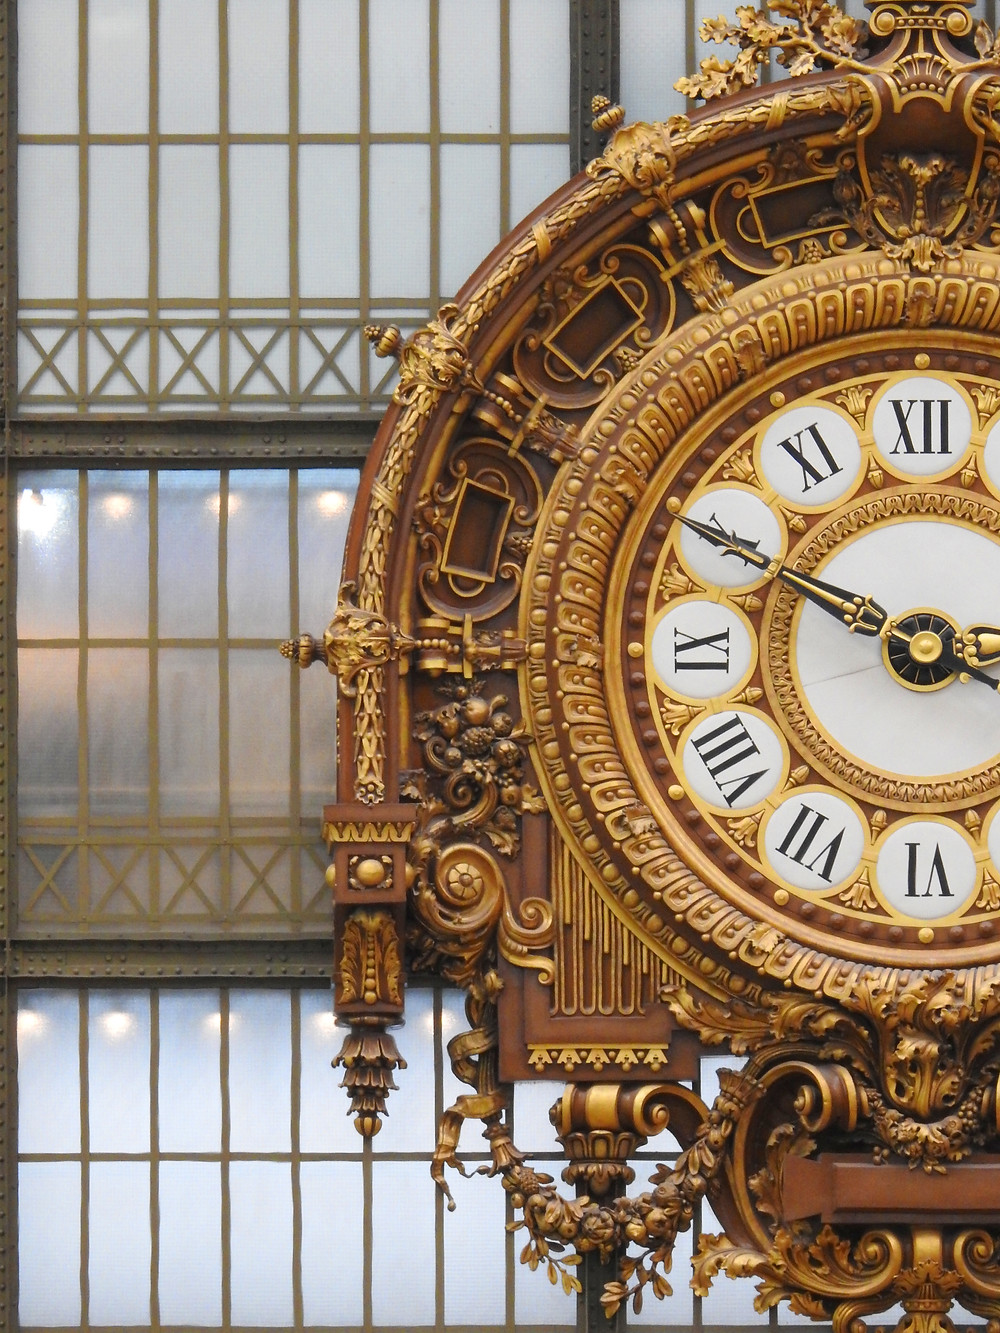 the iconic gold clock at the Musee D'Orsay in Paris